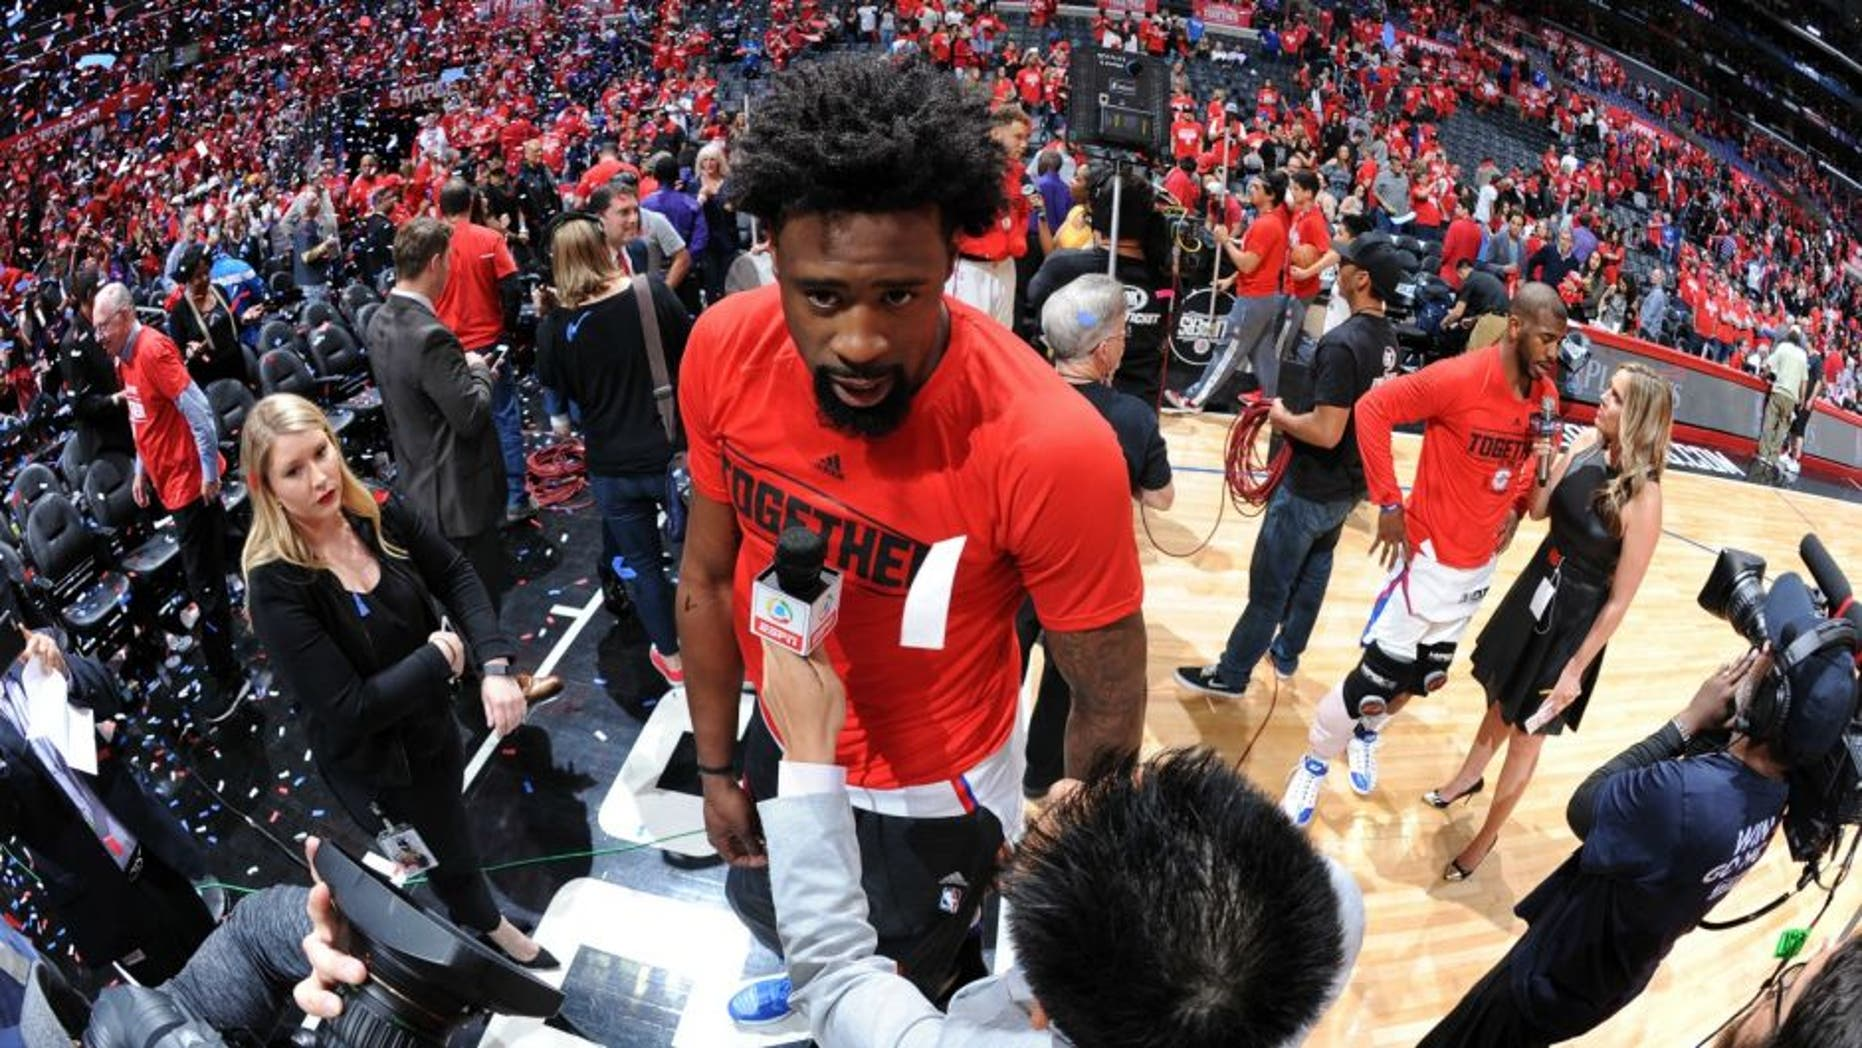 LOS ANGELES, CA - APRIL 17: DeAndre Jordan #6 of the Los Angeles Clippers is interviewed after the game against the Portland Trail Blazers in Game One of the Western Conference Quarterfinals during the 2016 NBA Playoffs on April 17, 2016 at STAPLES Center in Los Angeles, California. NOTE TO USER: User expressly acknowledges and agrees that, by downloading and/or using this Photograph, user is consenting to the terms and conditions of the Getty Images License Agreement. Mandatory Copyright Notice: Copyright 2016 NBAE (Photo by Andrew D. Bernstein/NBAE via Getty Images)